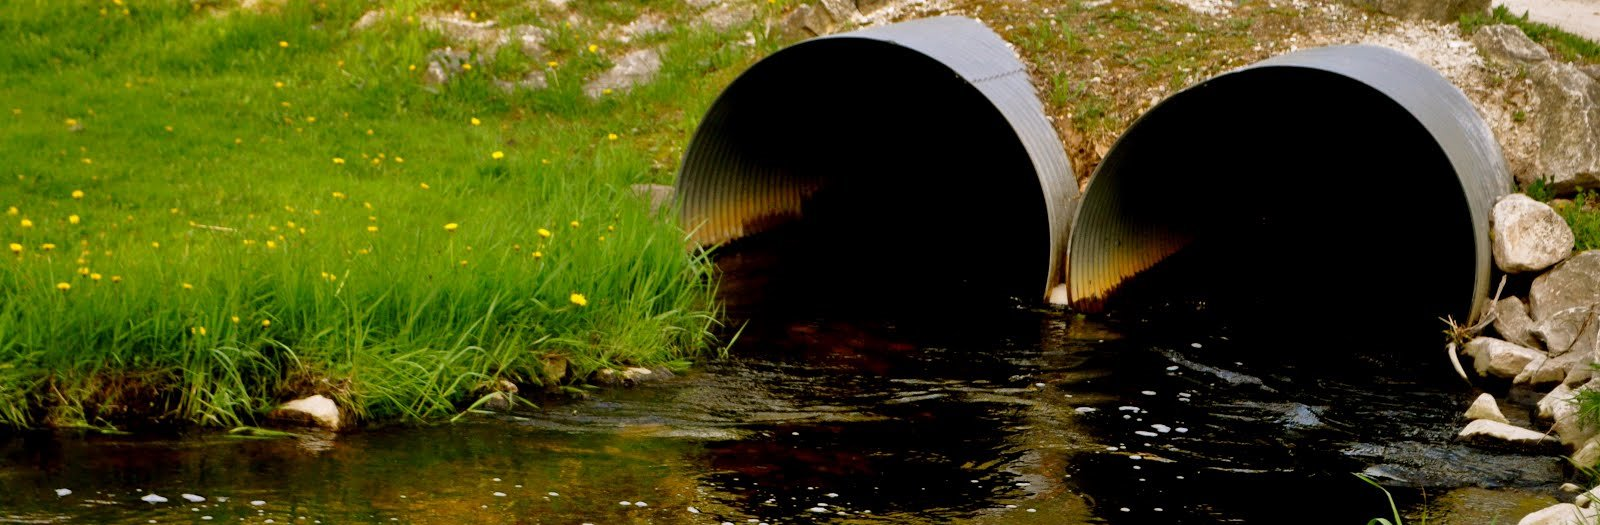 Water Drains